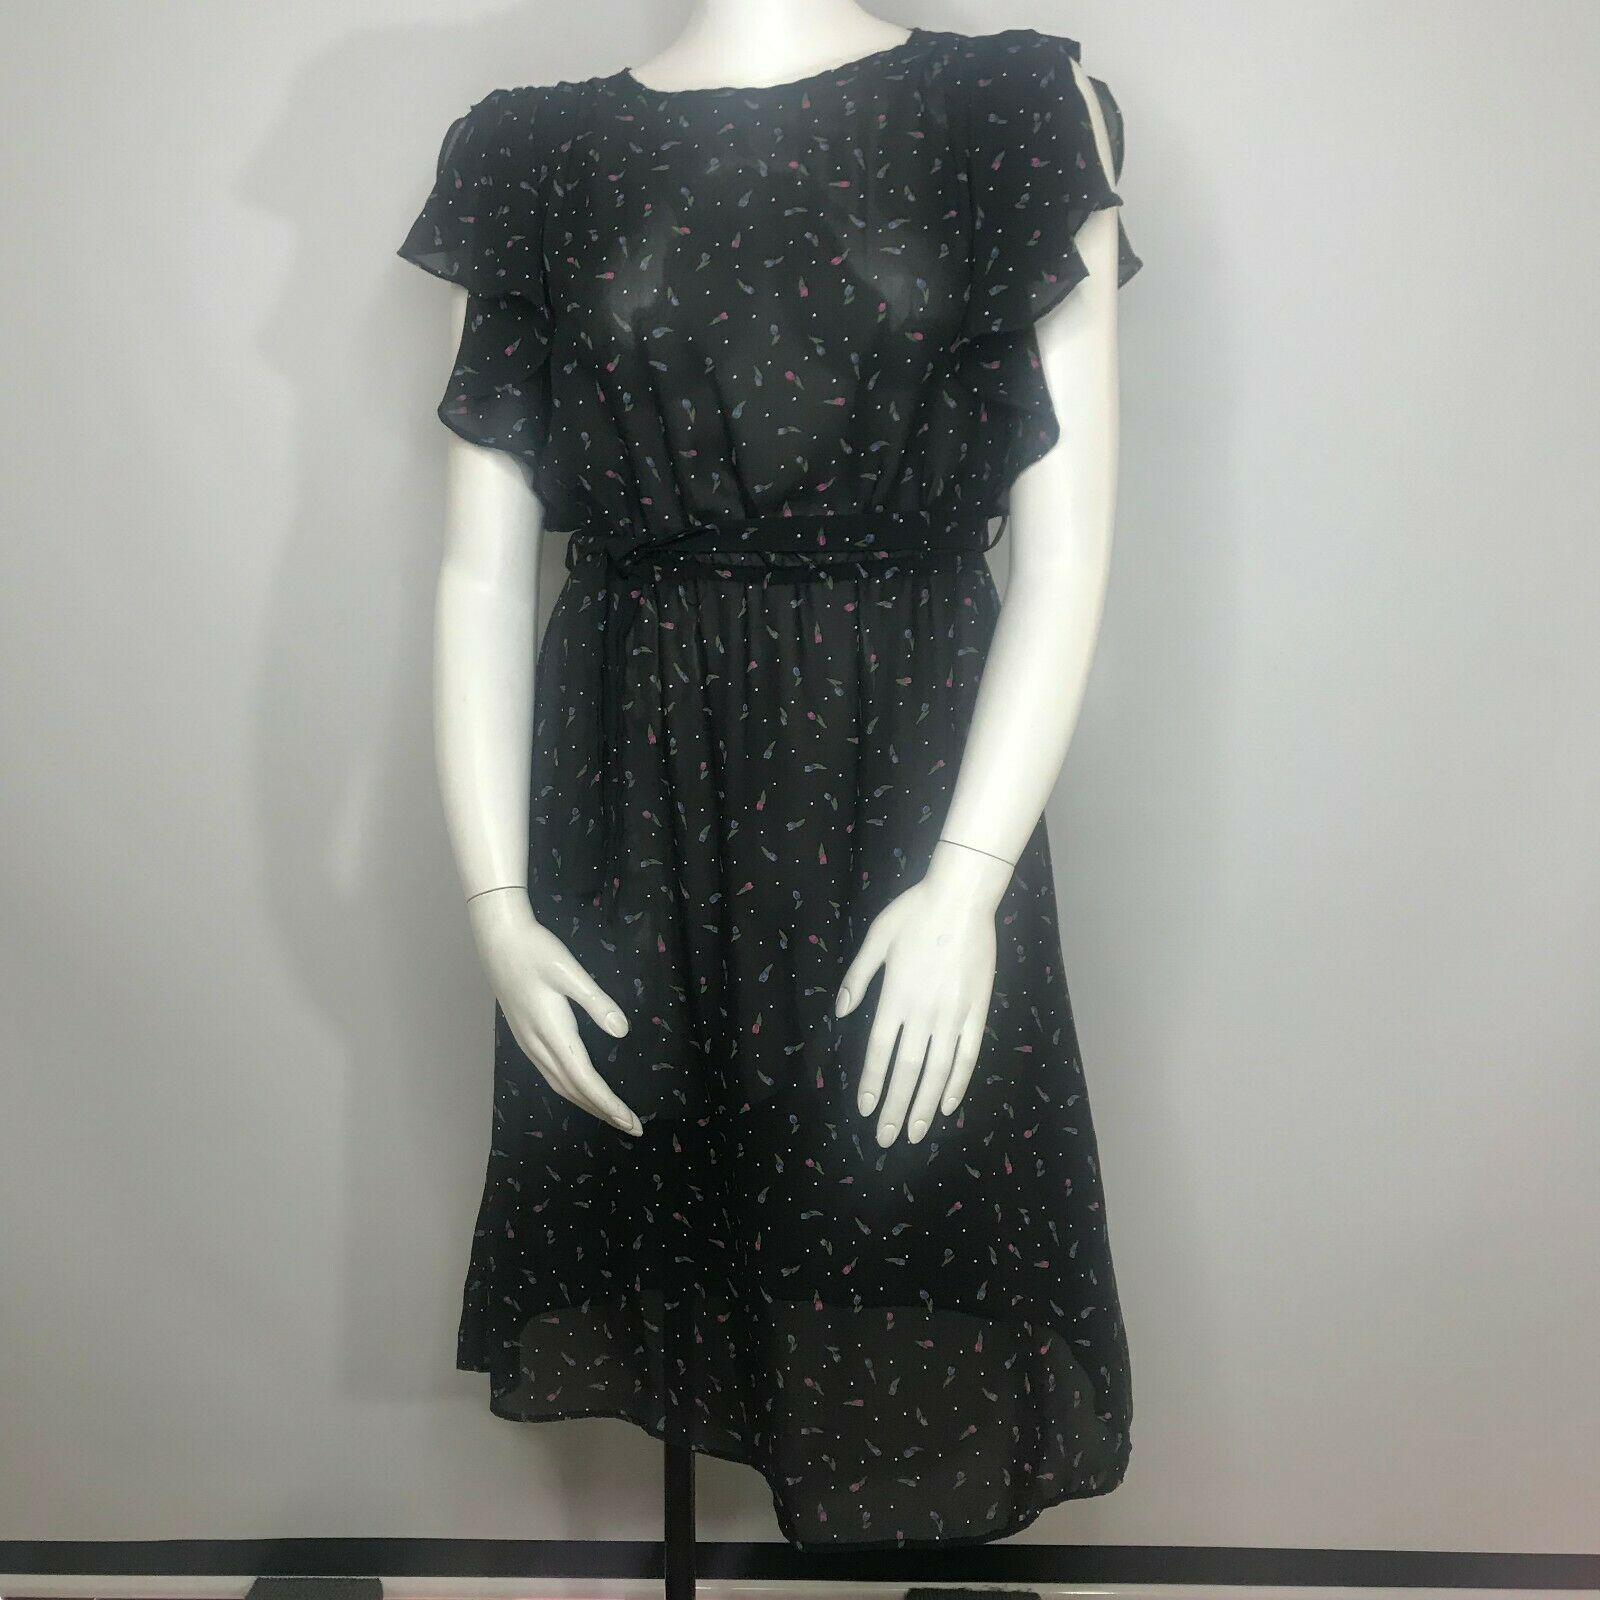 Vtg 80's Byer Too Sheer schwarz Floral Dress Größe 9 Tulips Polka Dots USA Made